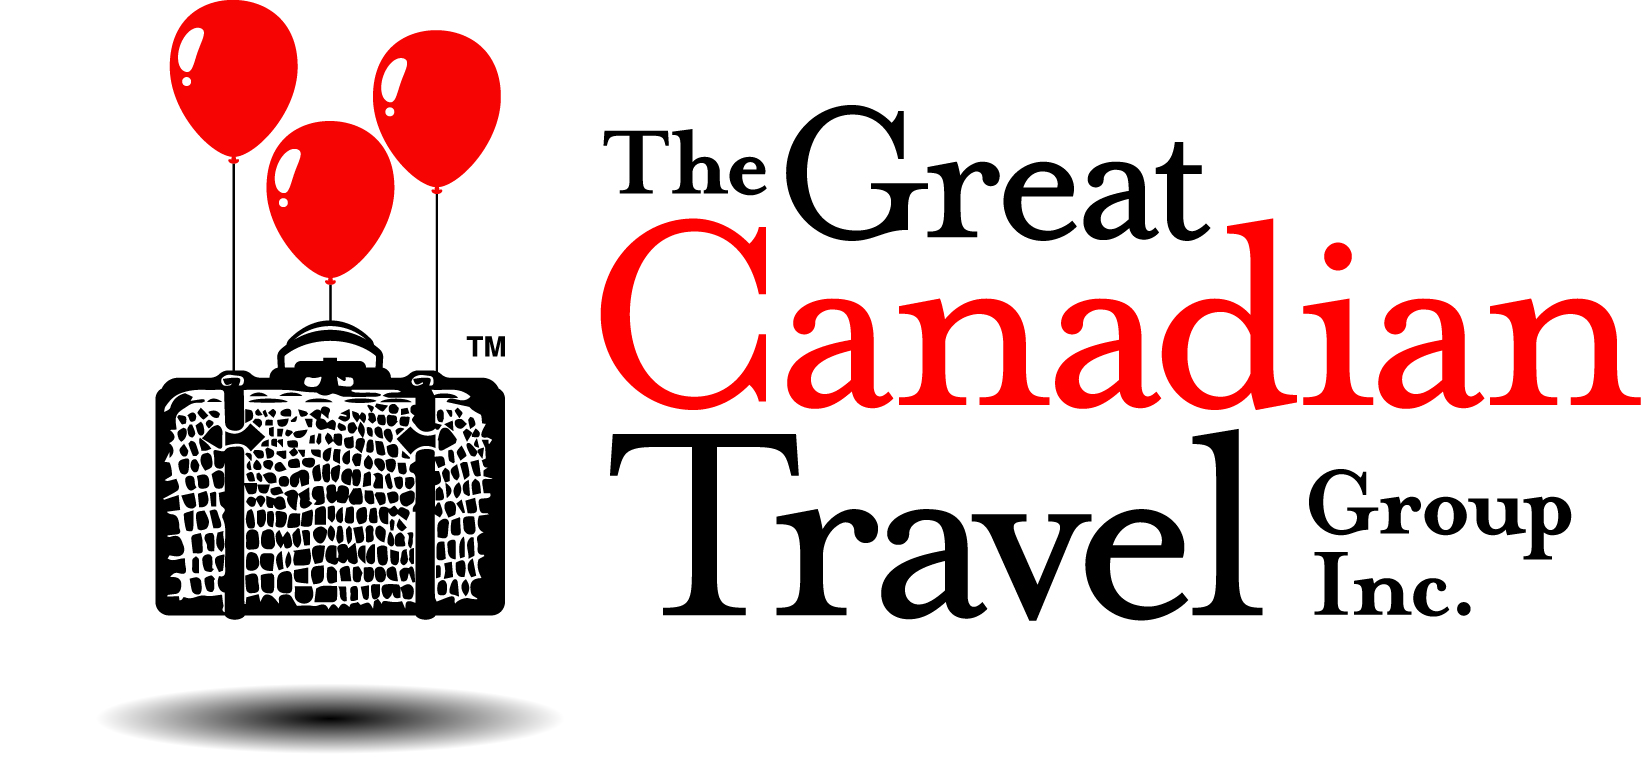 The Great Canadian Travel Group Inc